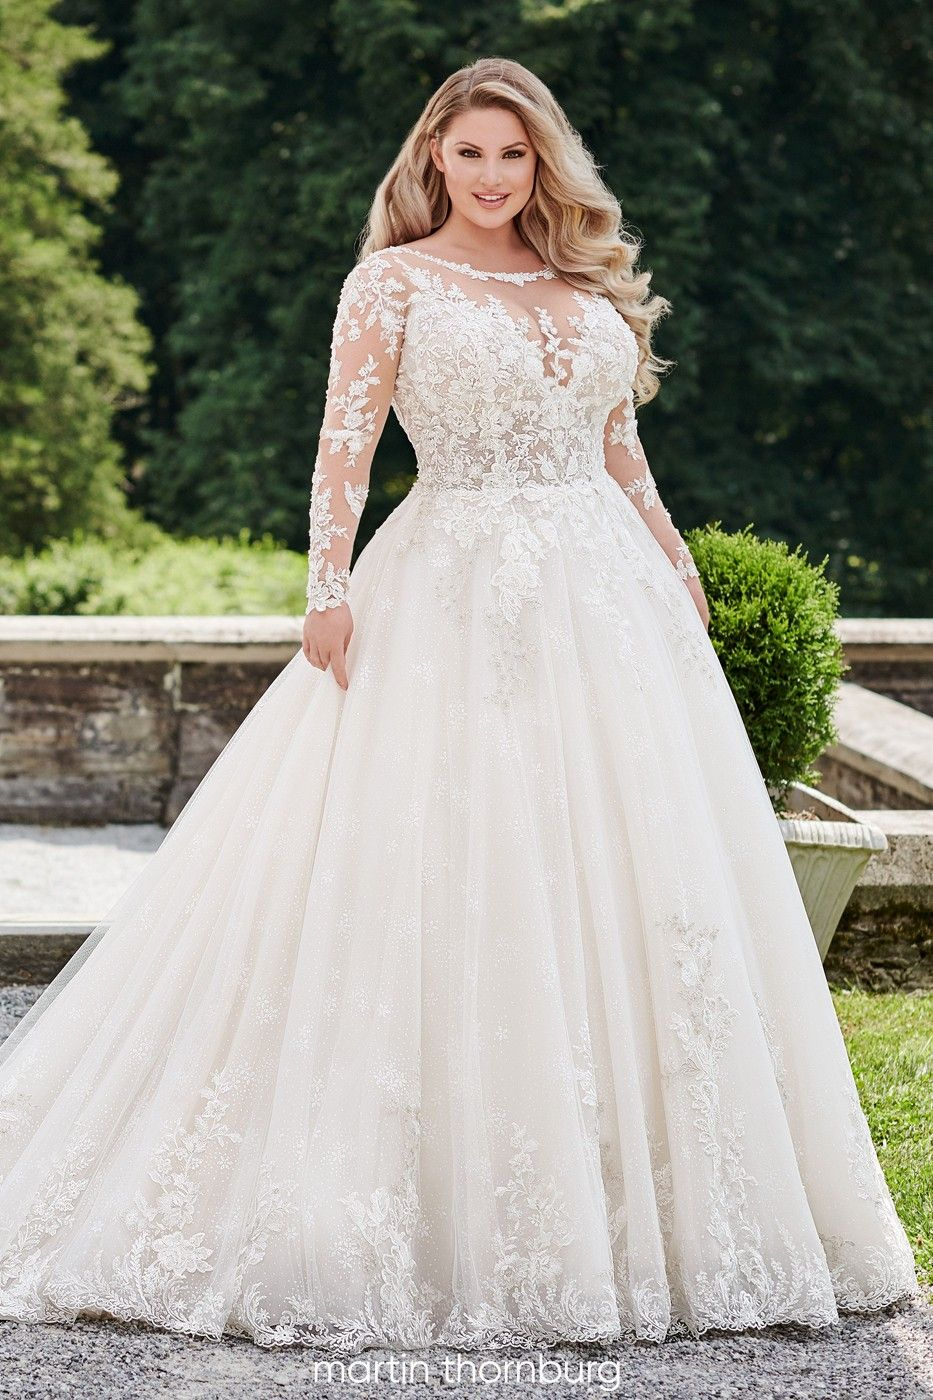 41+ Plus size wedding dresses with sleeves ideas